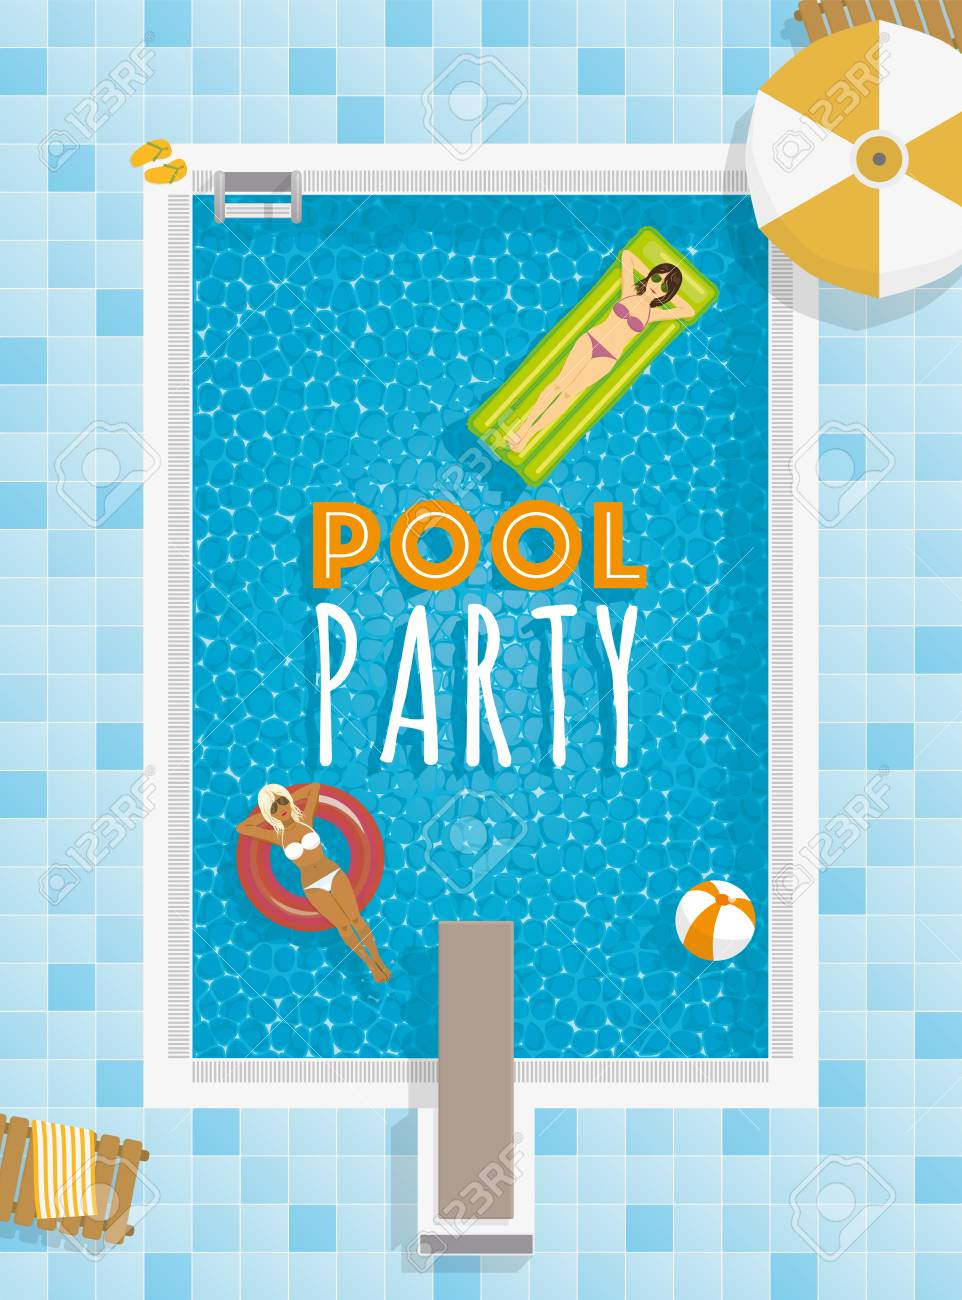 Pool party template with girls relaxing on swimming pool float..